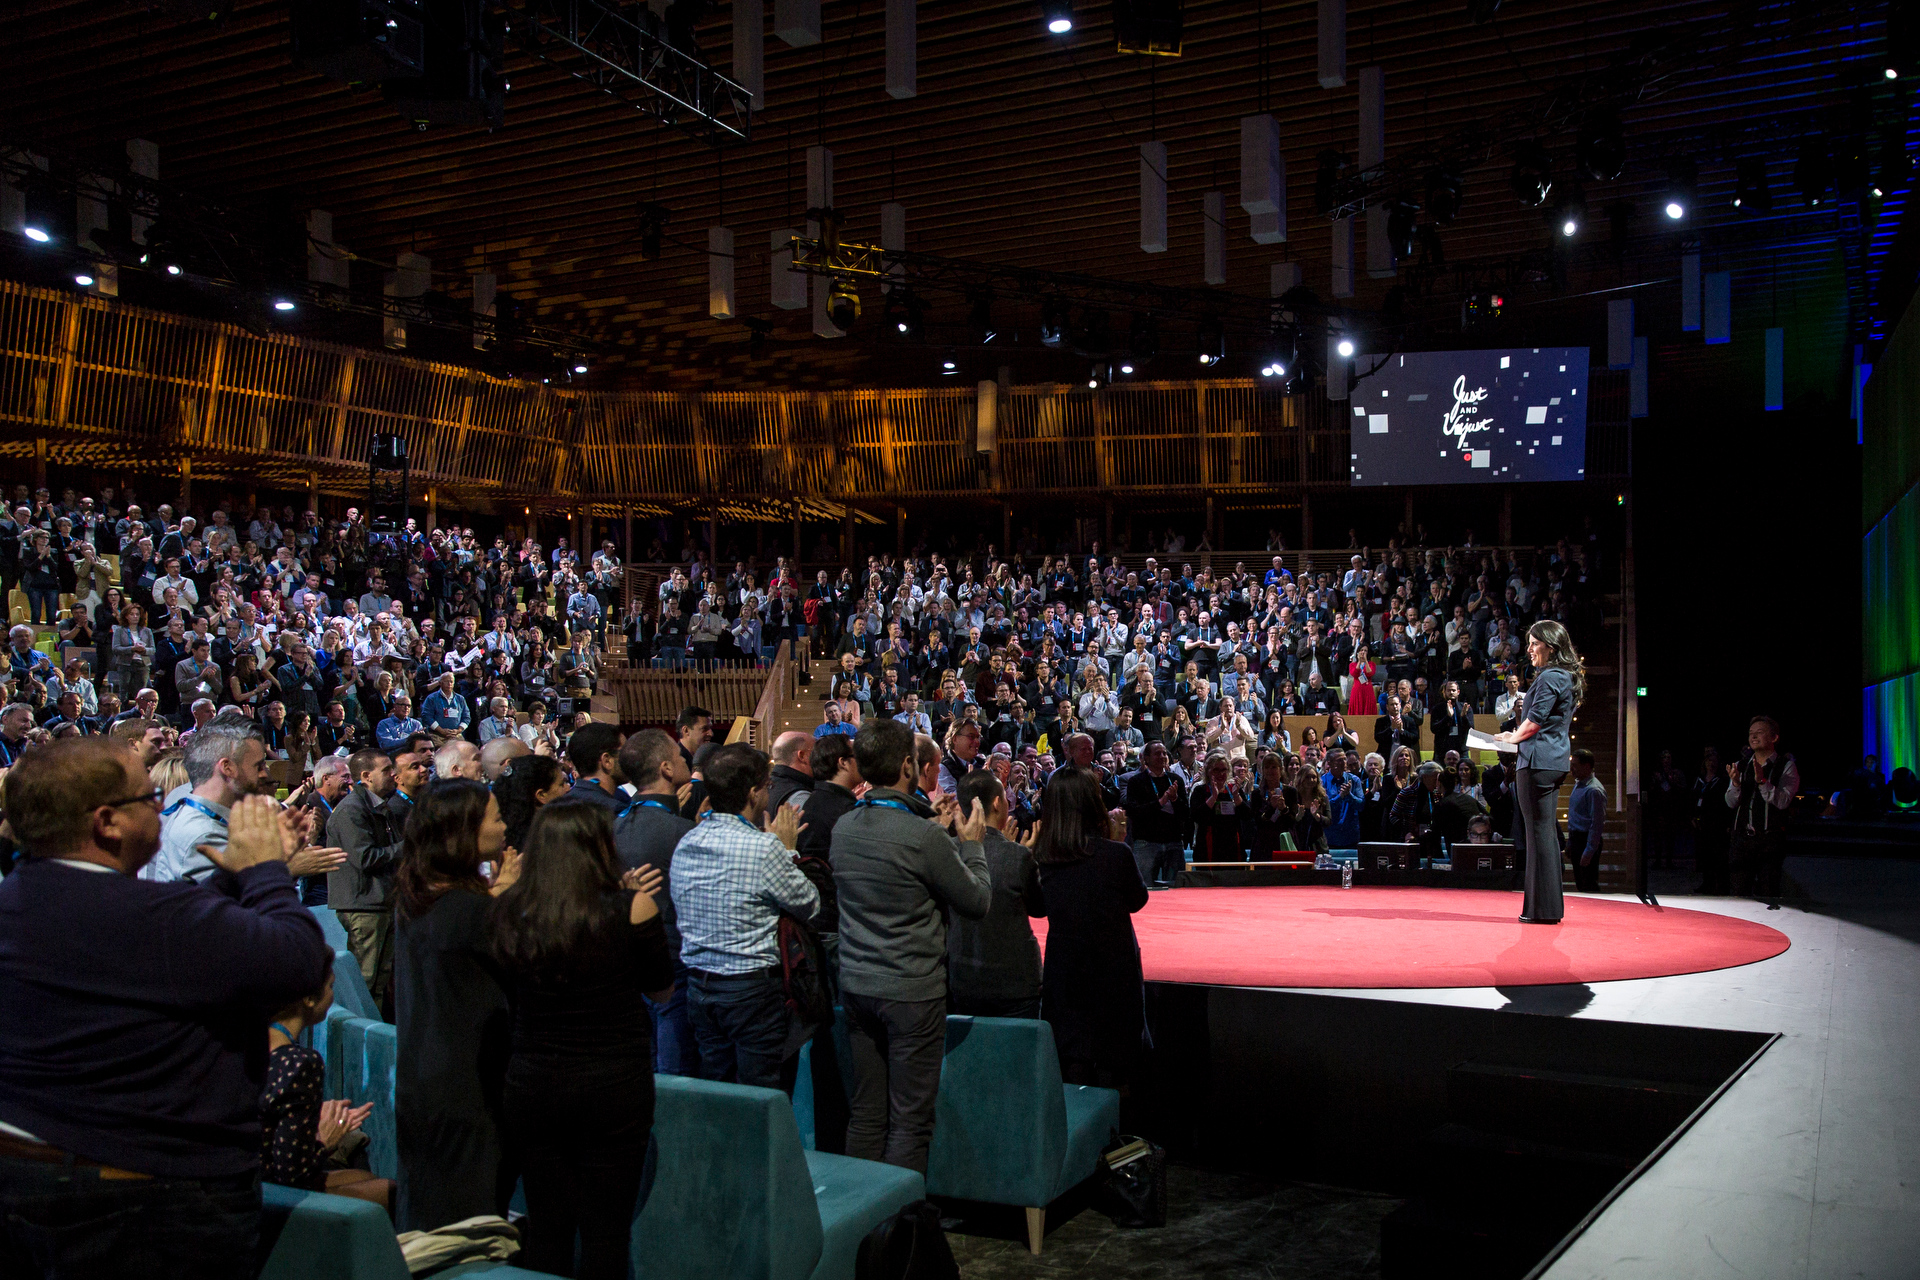 Monica Lewinsky speaks at TED2015 - Truth and Dare, Session 9. Photo: James Duncan Davidson/TED